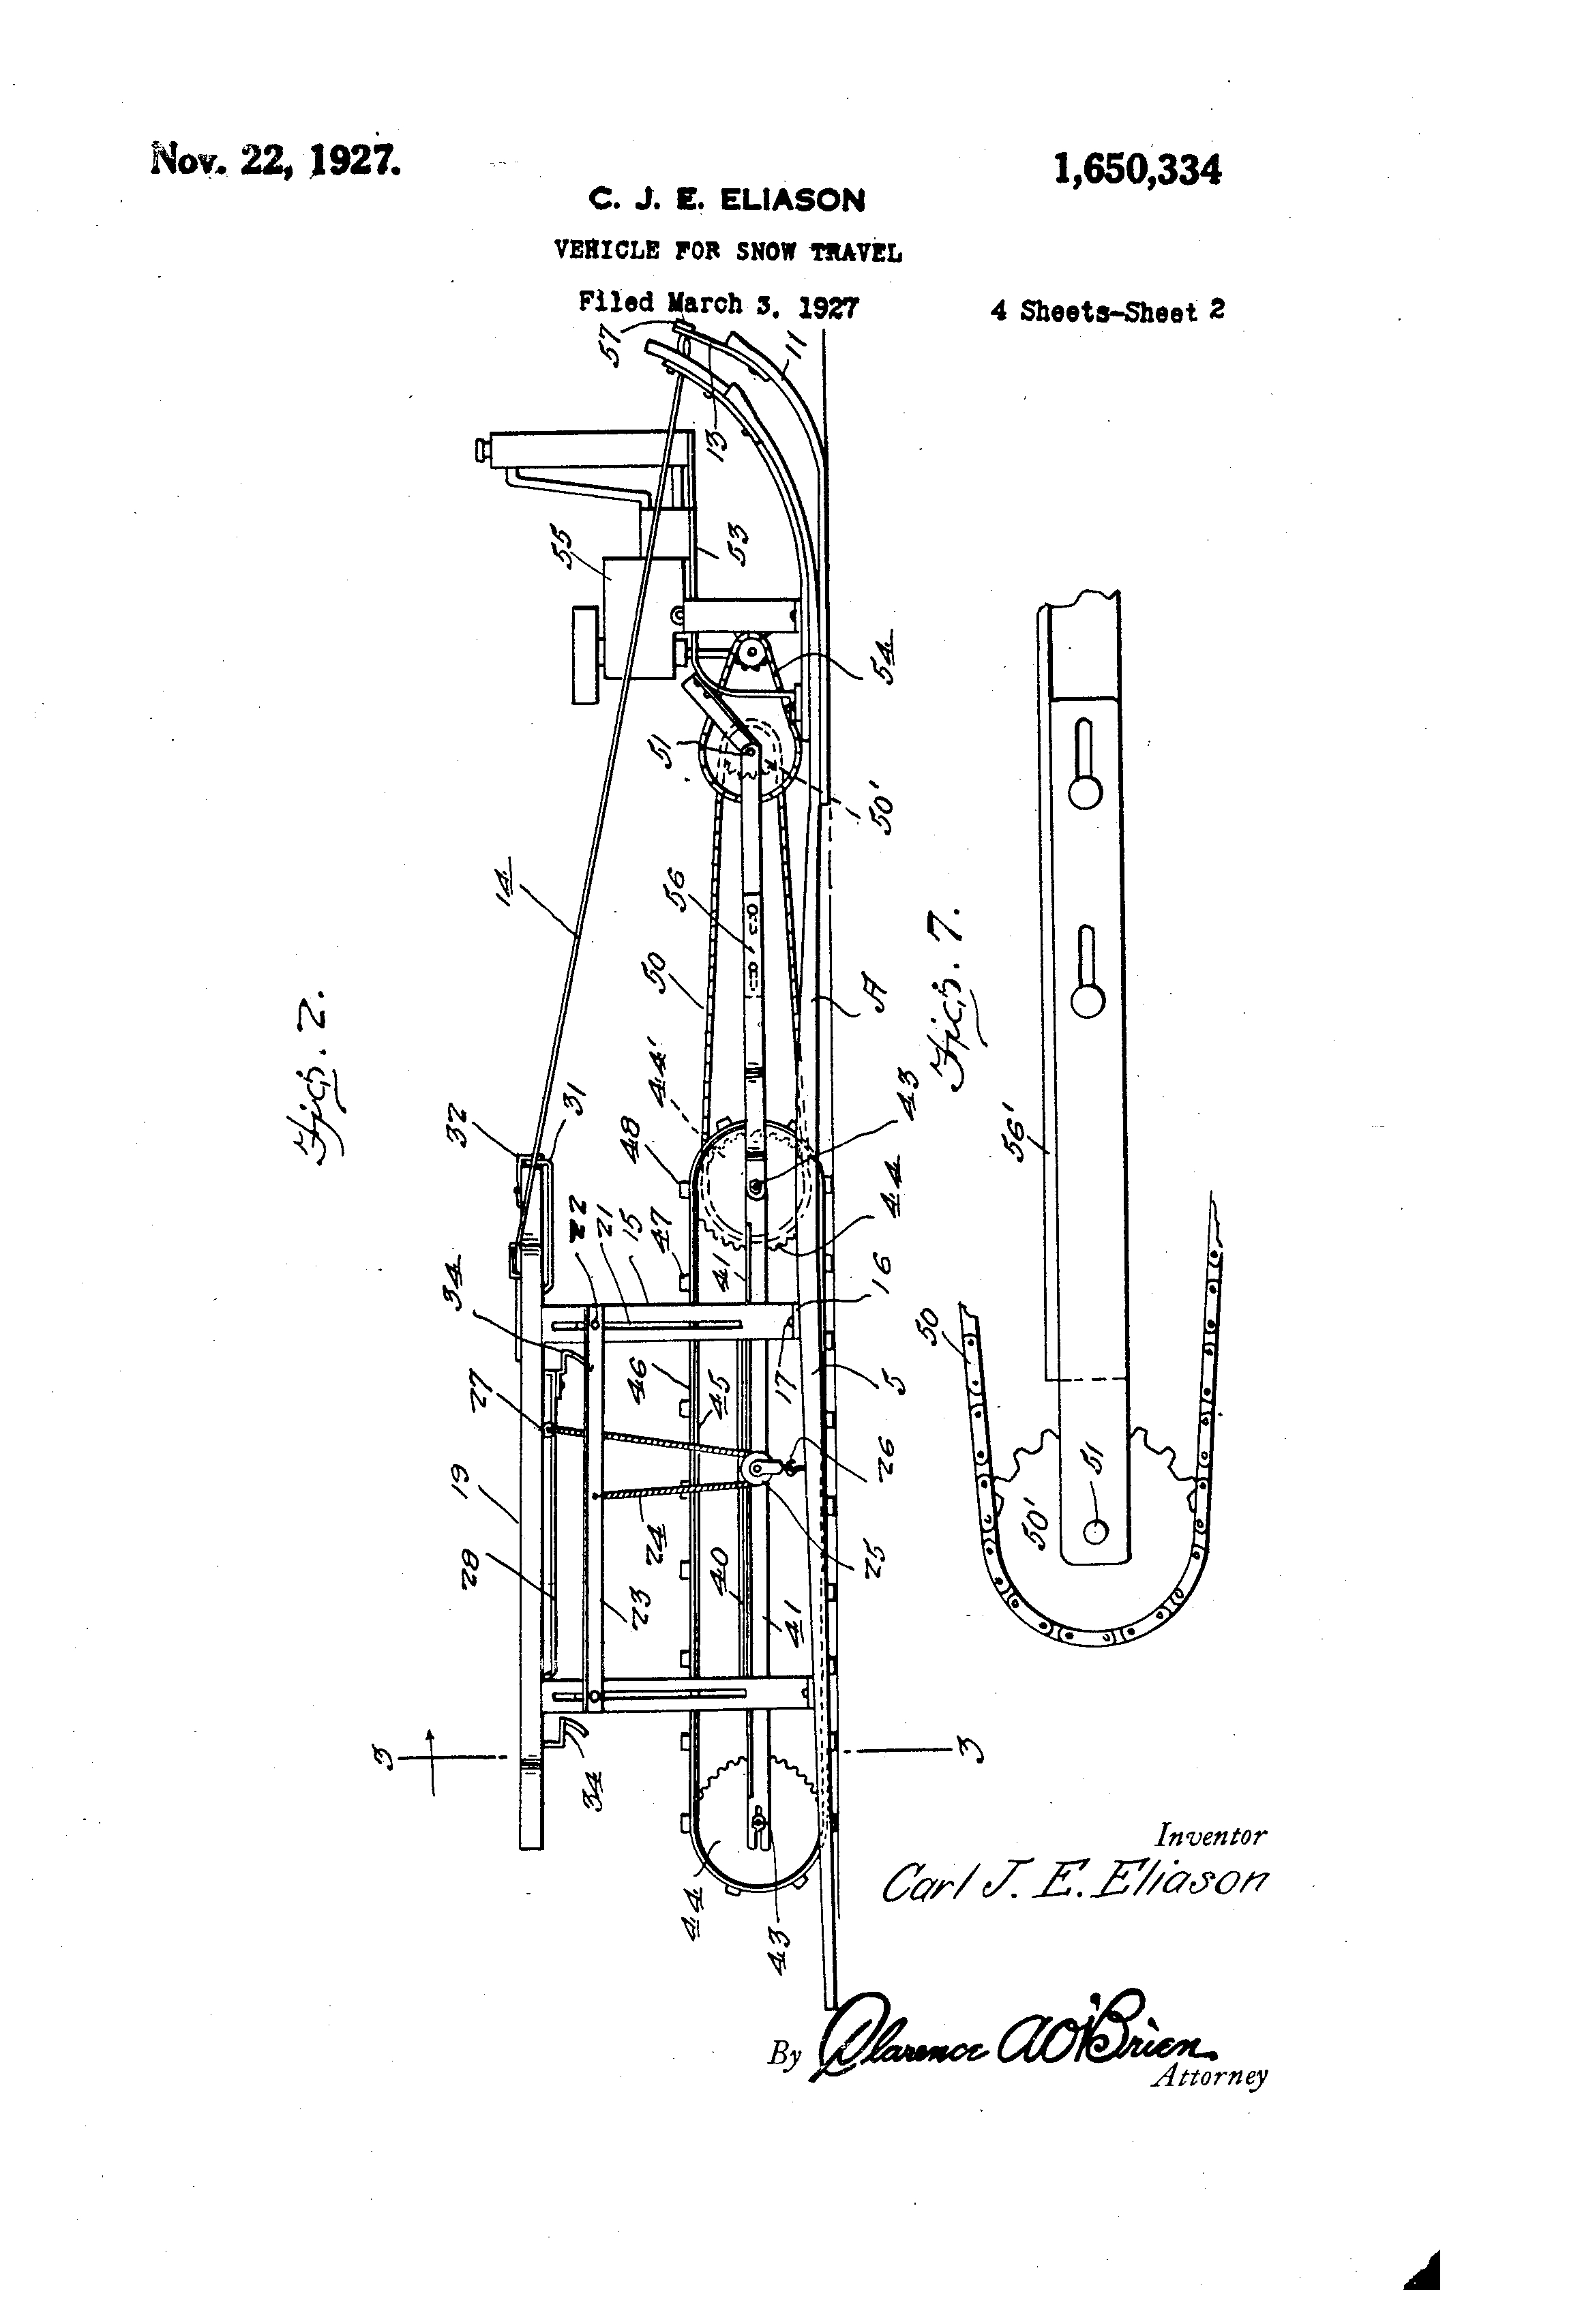 1927 snowmobile patent.